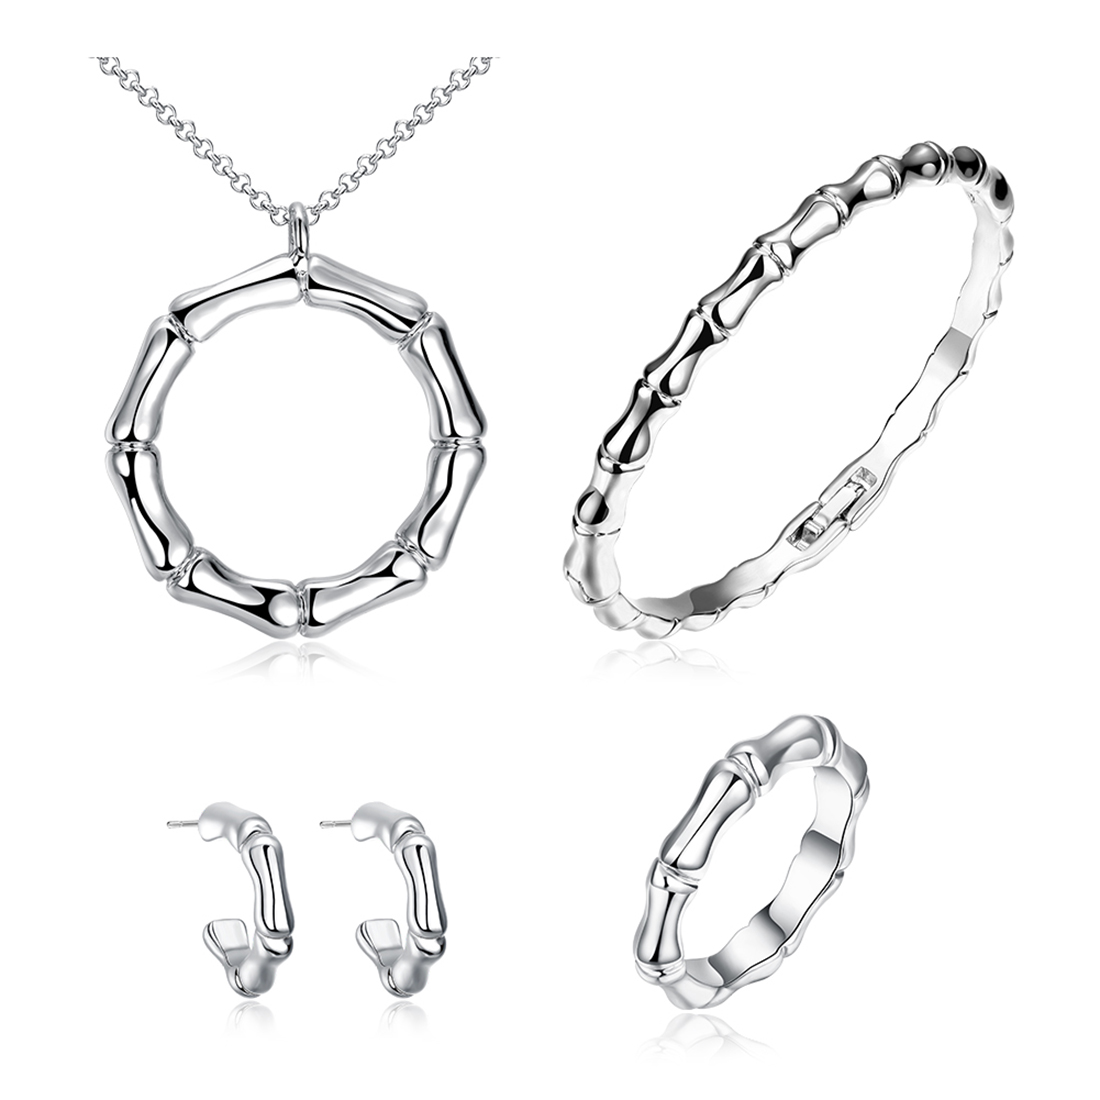 4 Piece Set  Platinum Plated Necklace, Earrings, Rings, and Bracelet